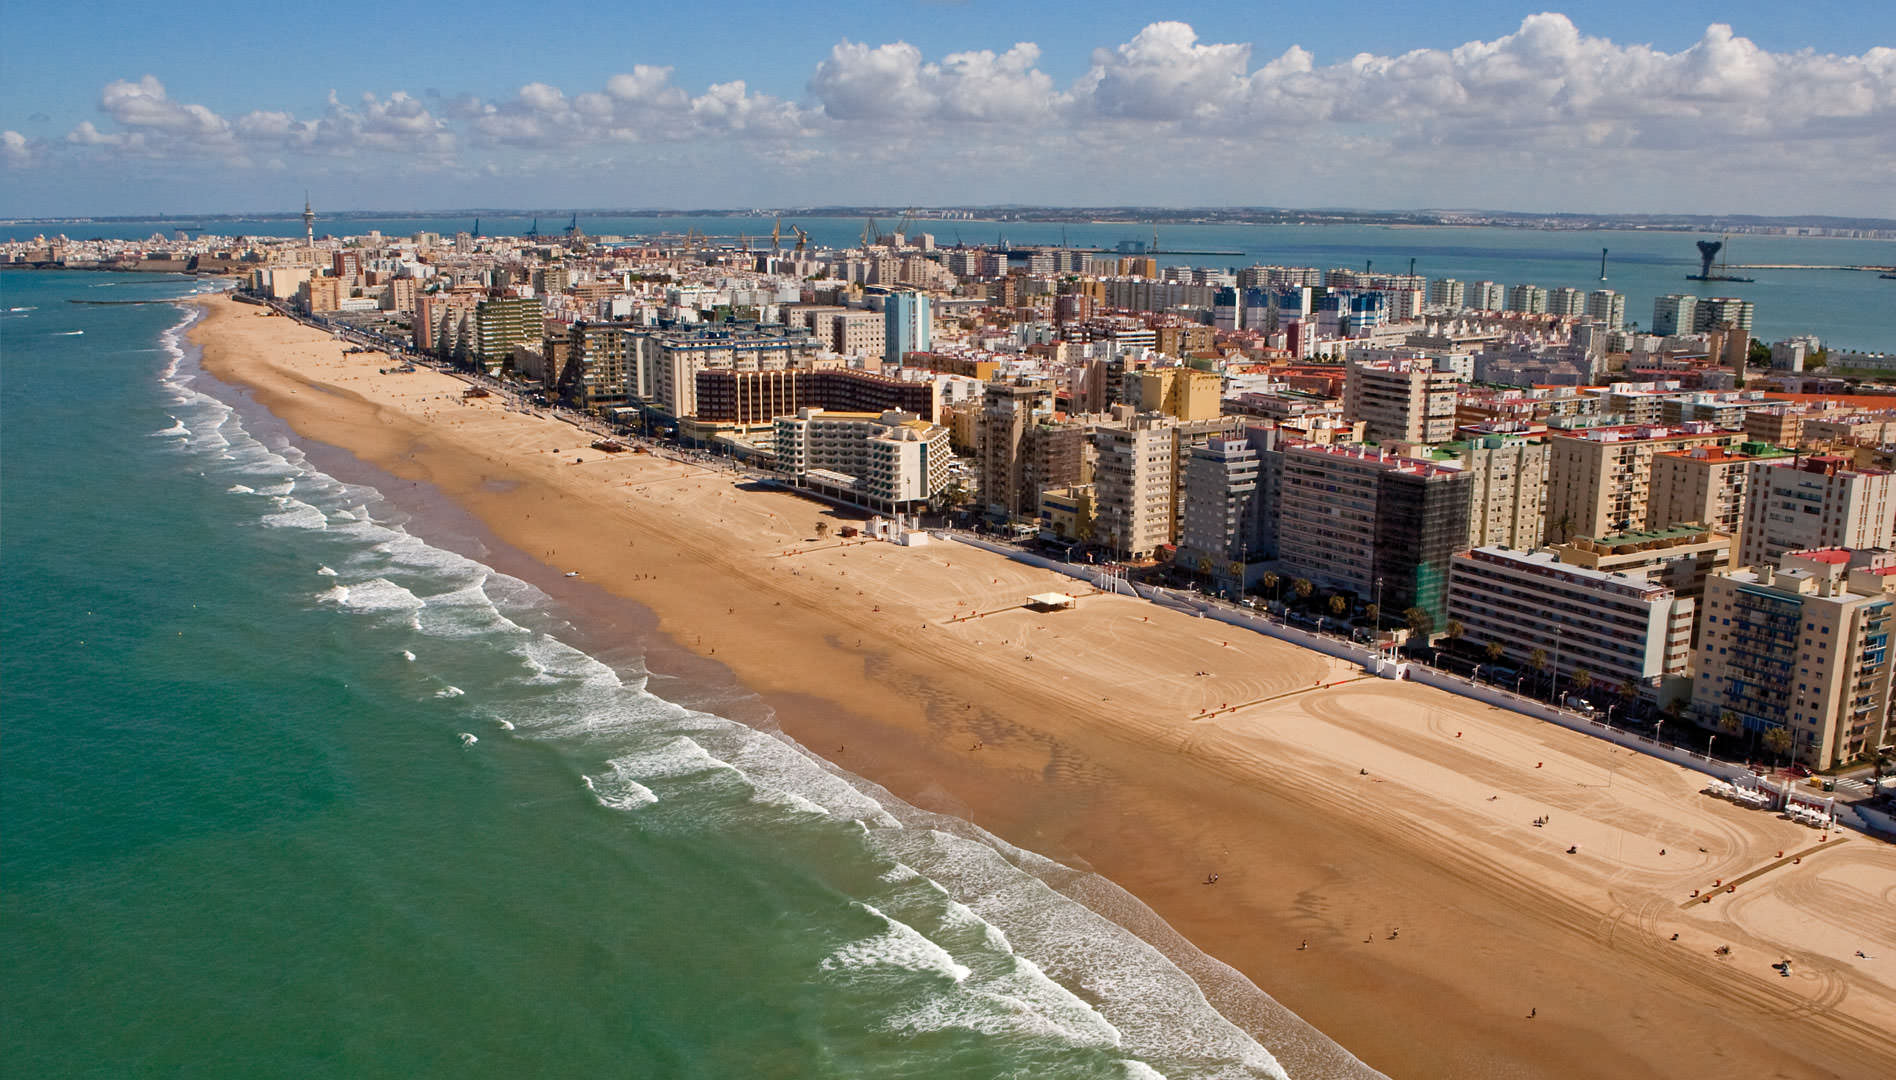 Aerial view of Victoria Beach in Cádiz.